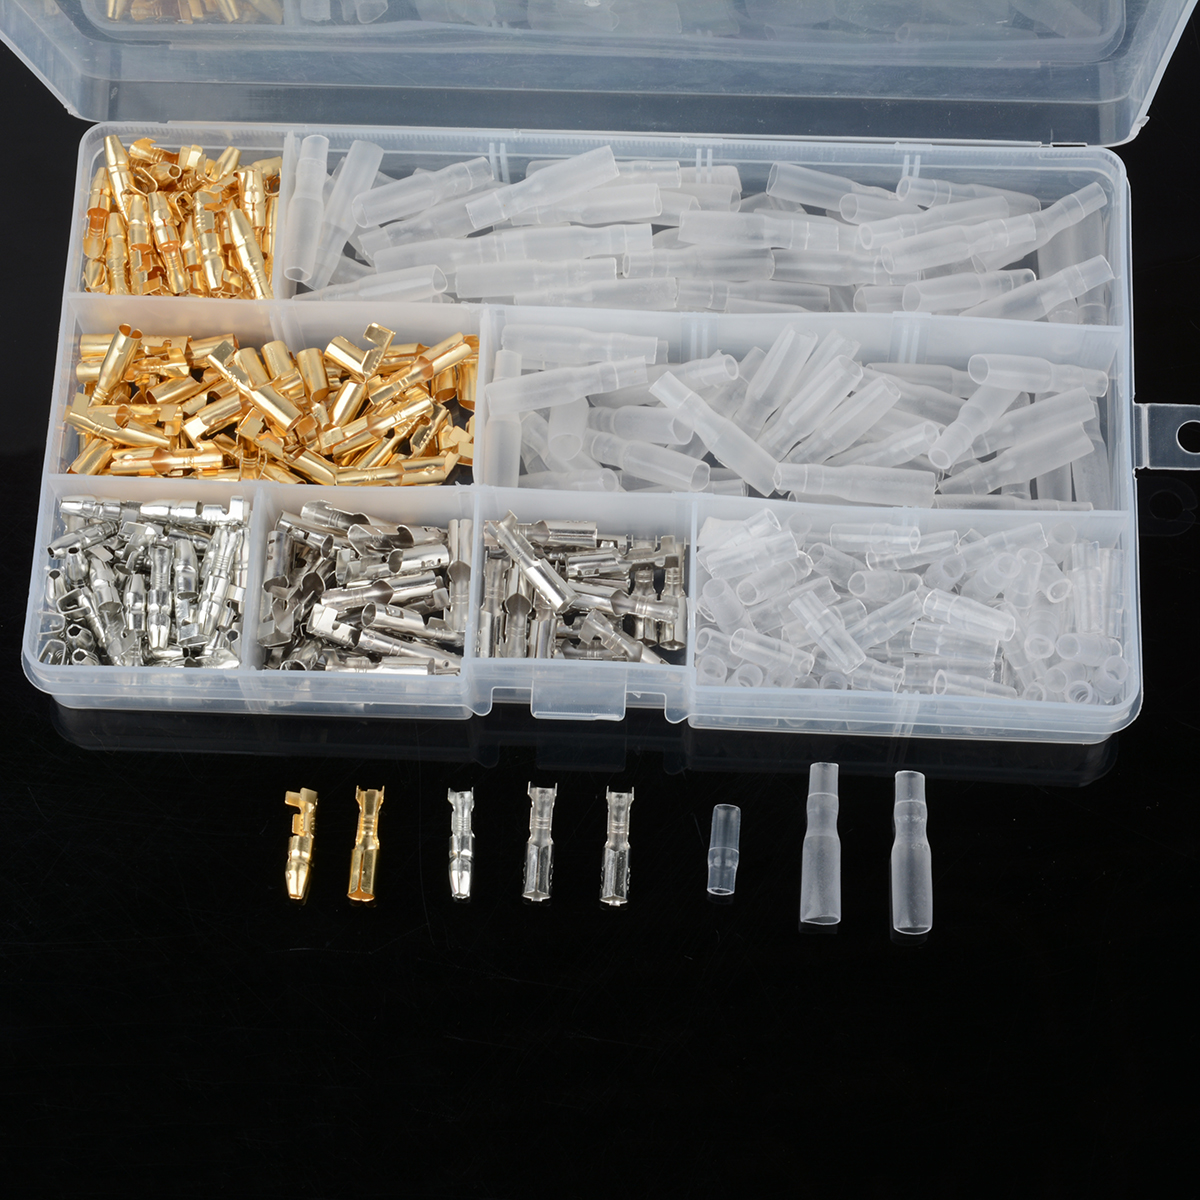 100 Set 3.9mm Brass Bullet Connectors Male & Female Silver Gold With Covers For Motorcycle Scooter Car Trauck